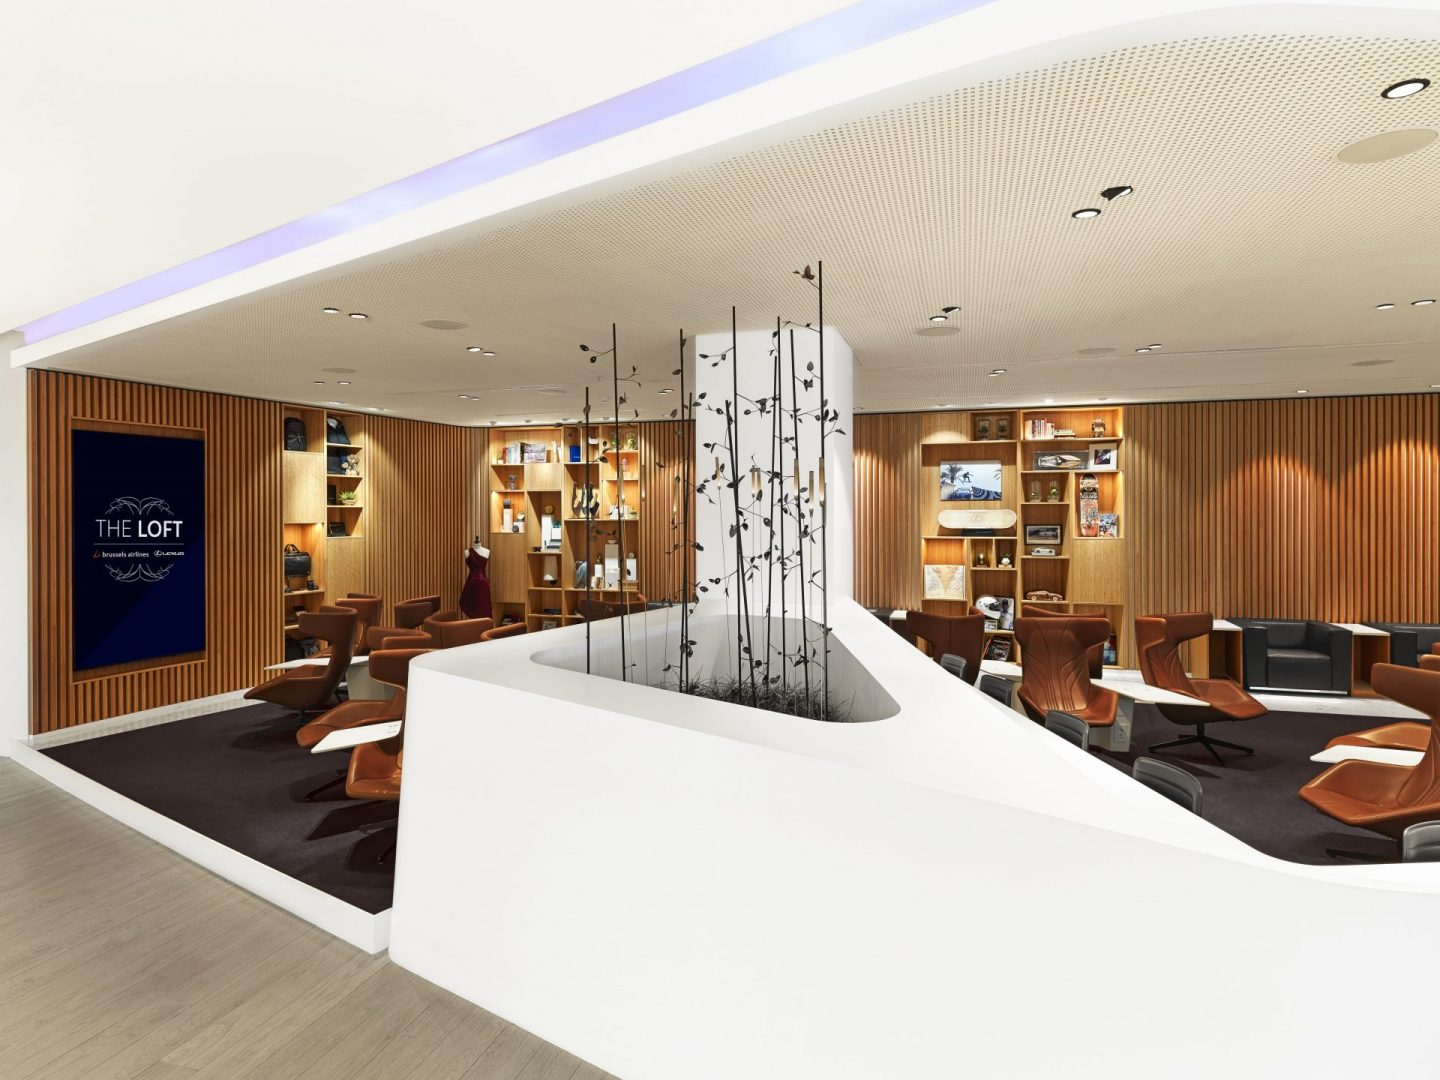 THE LOFT by Brussels Airlines & Lexus